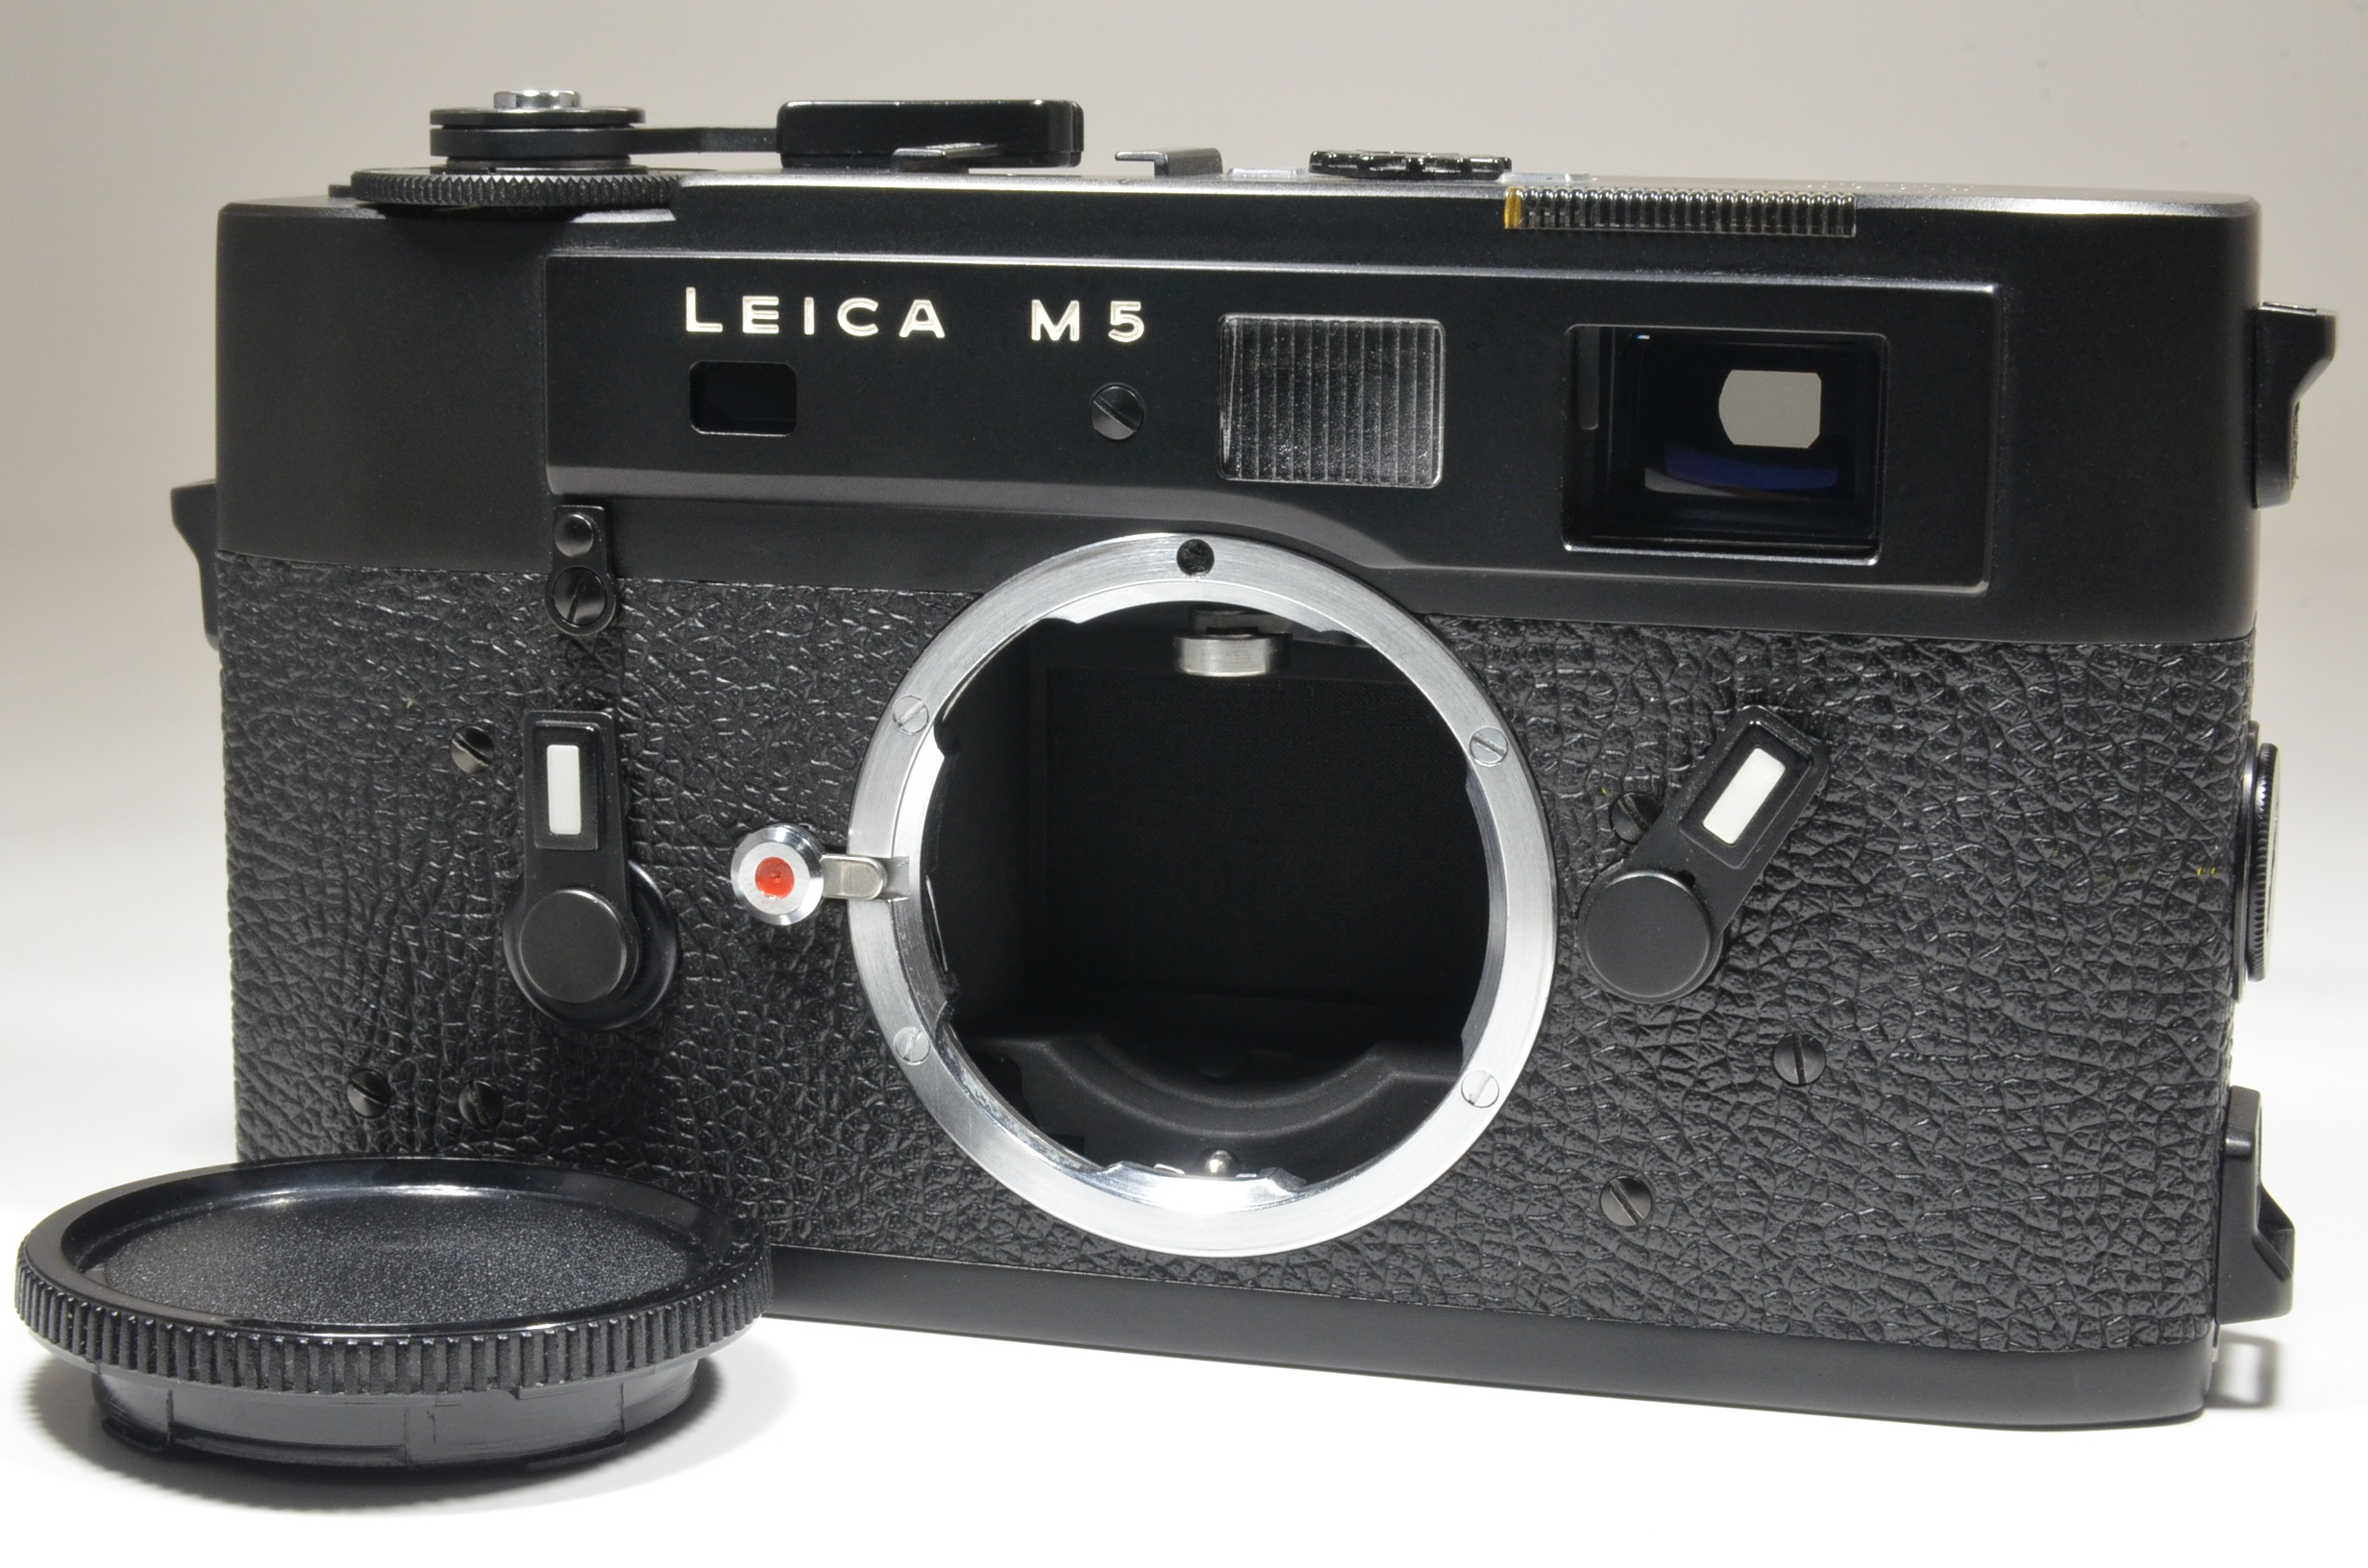 leica m5 black 3 lug serial no.1377320 year 1973